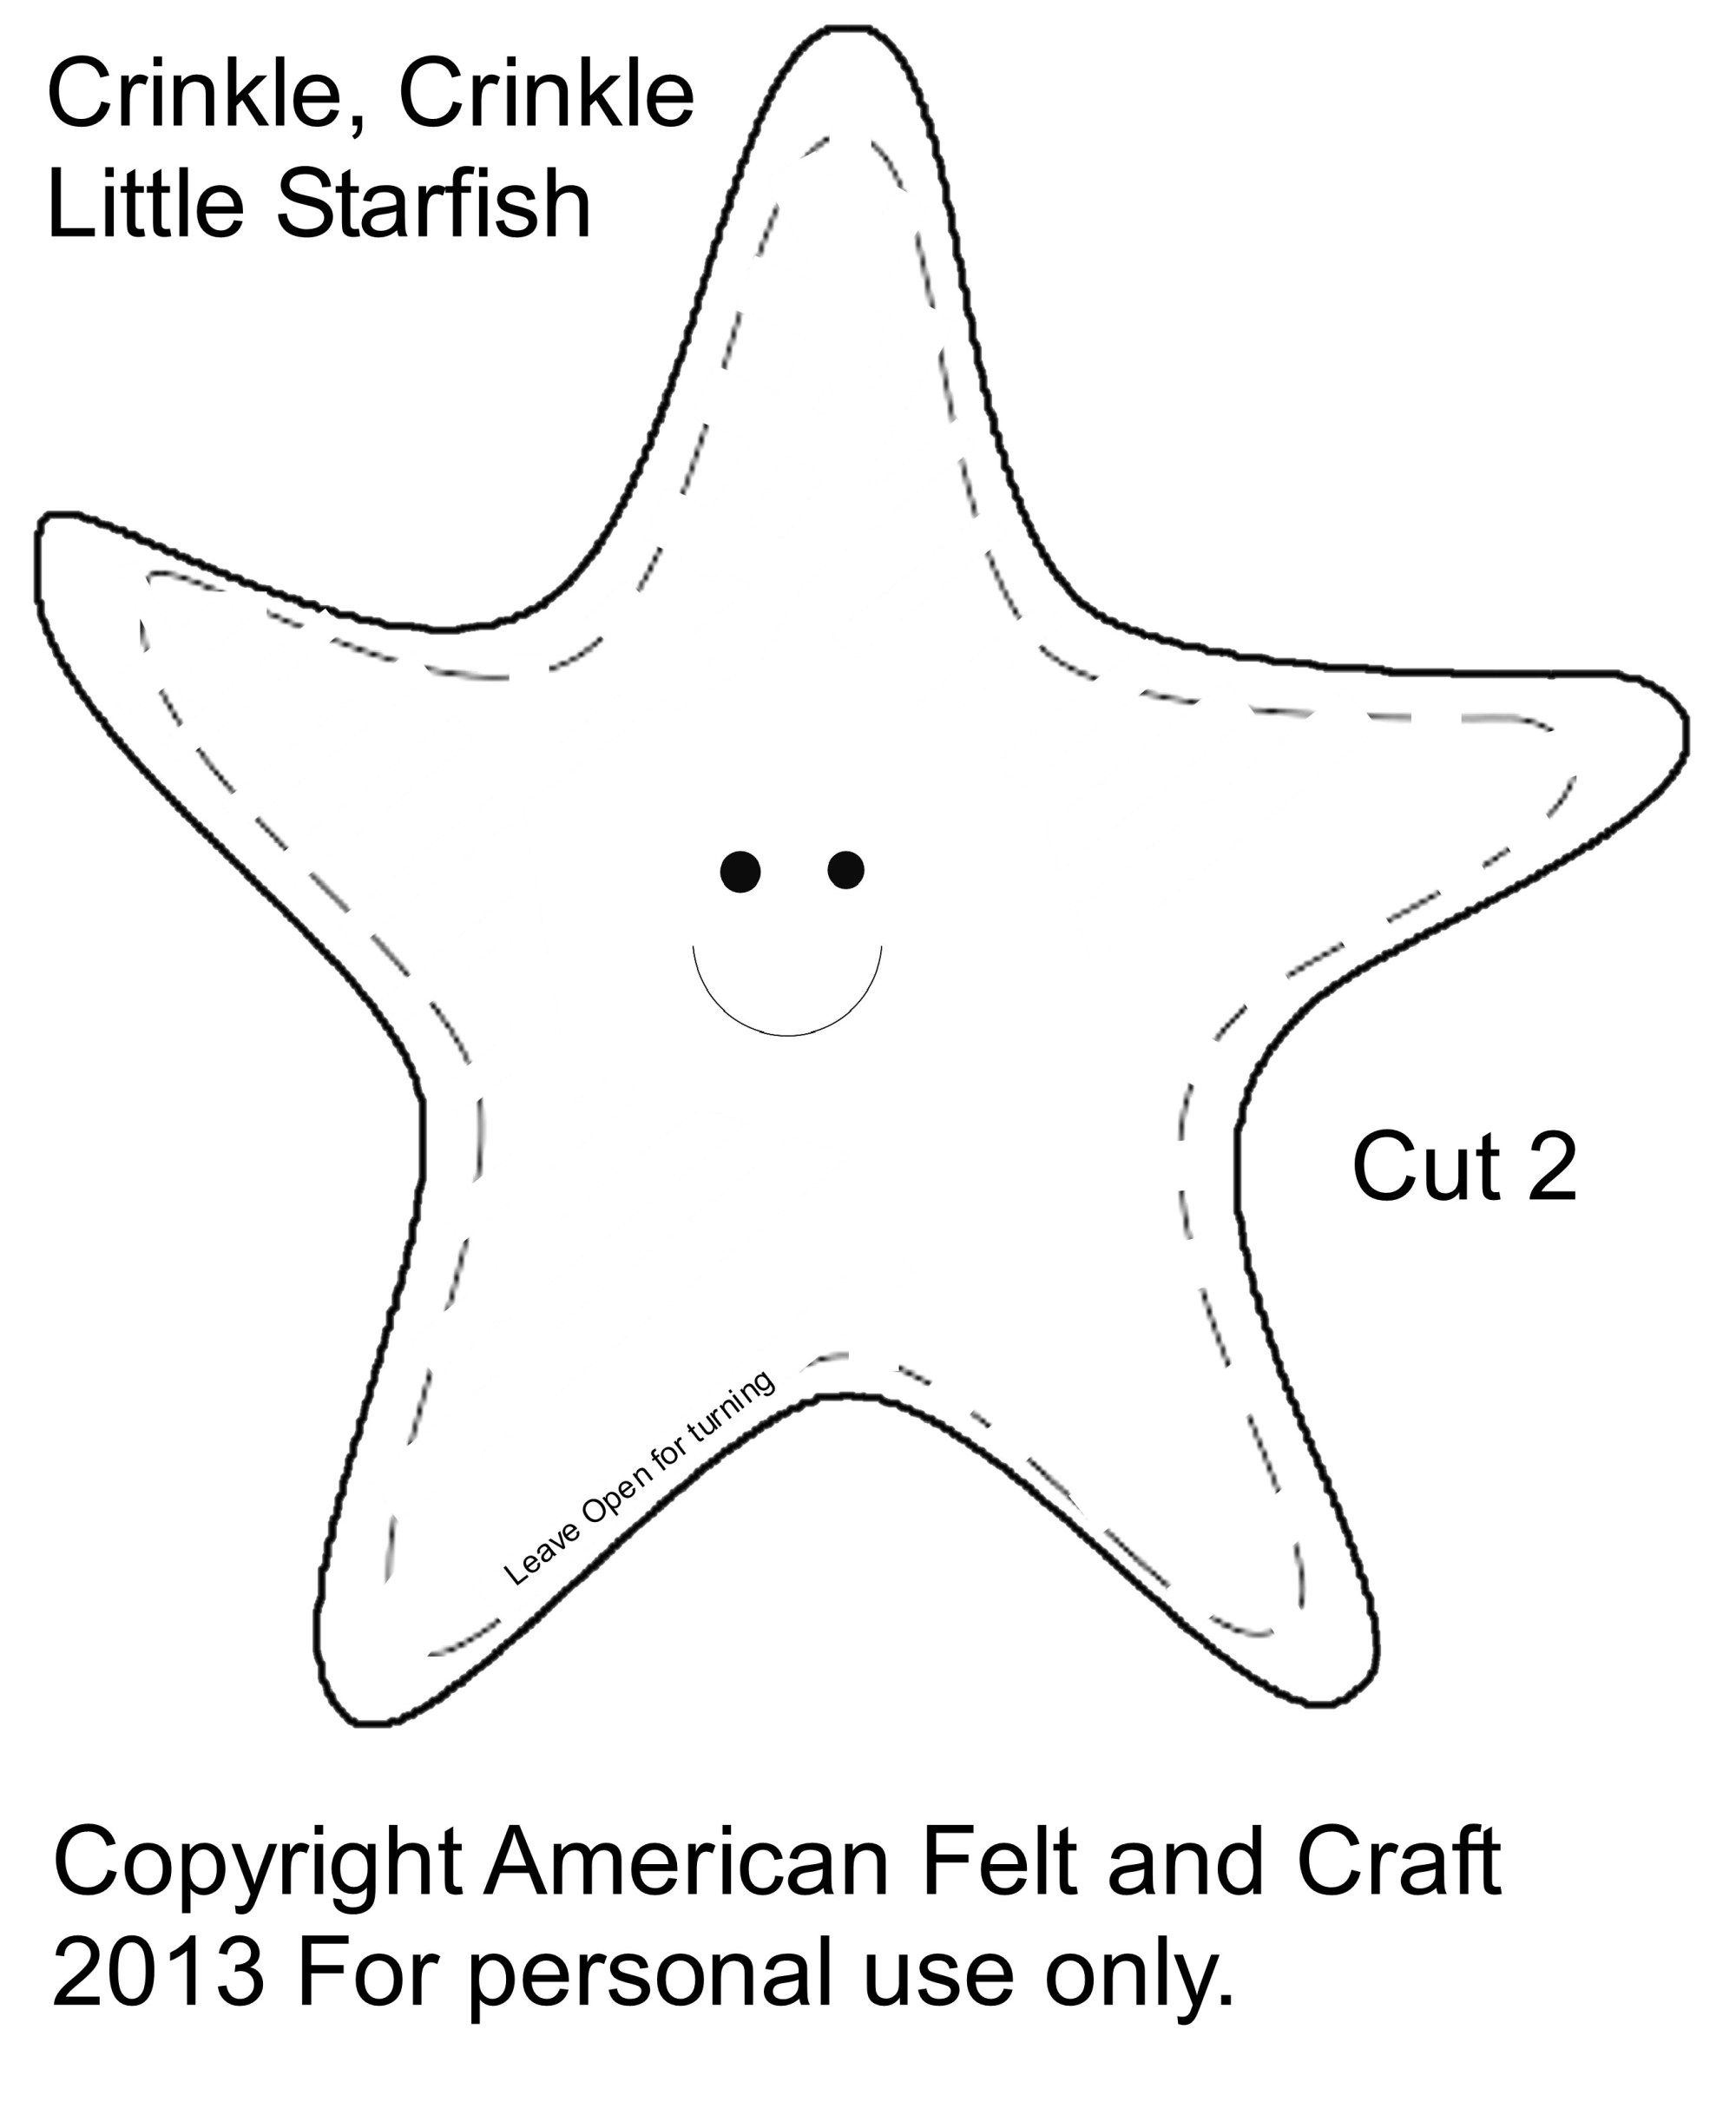 Starfish poem card - How To Make A Felt Starfish Crinkle Toy